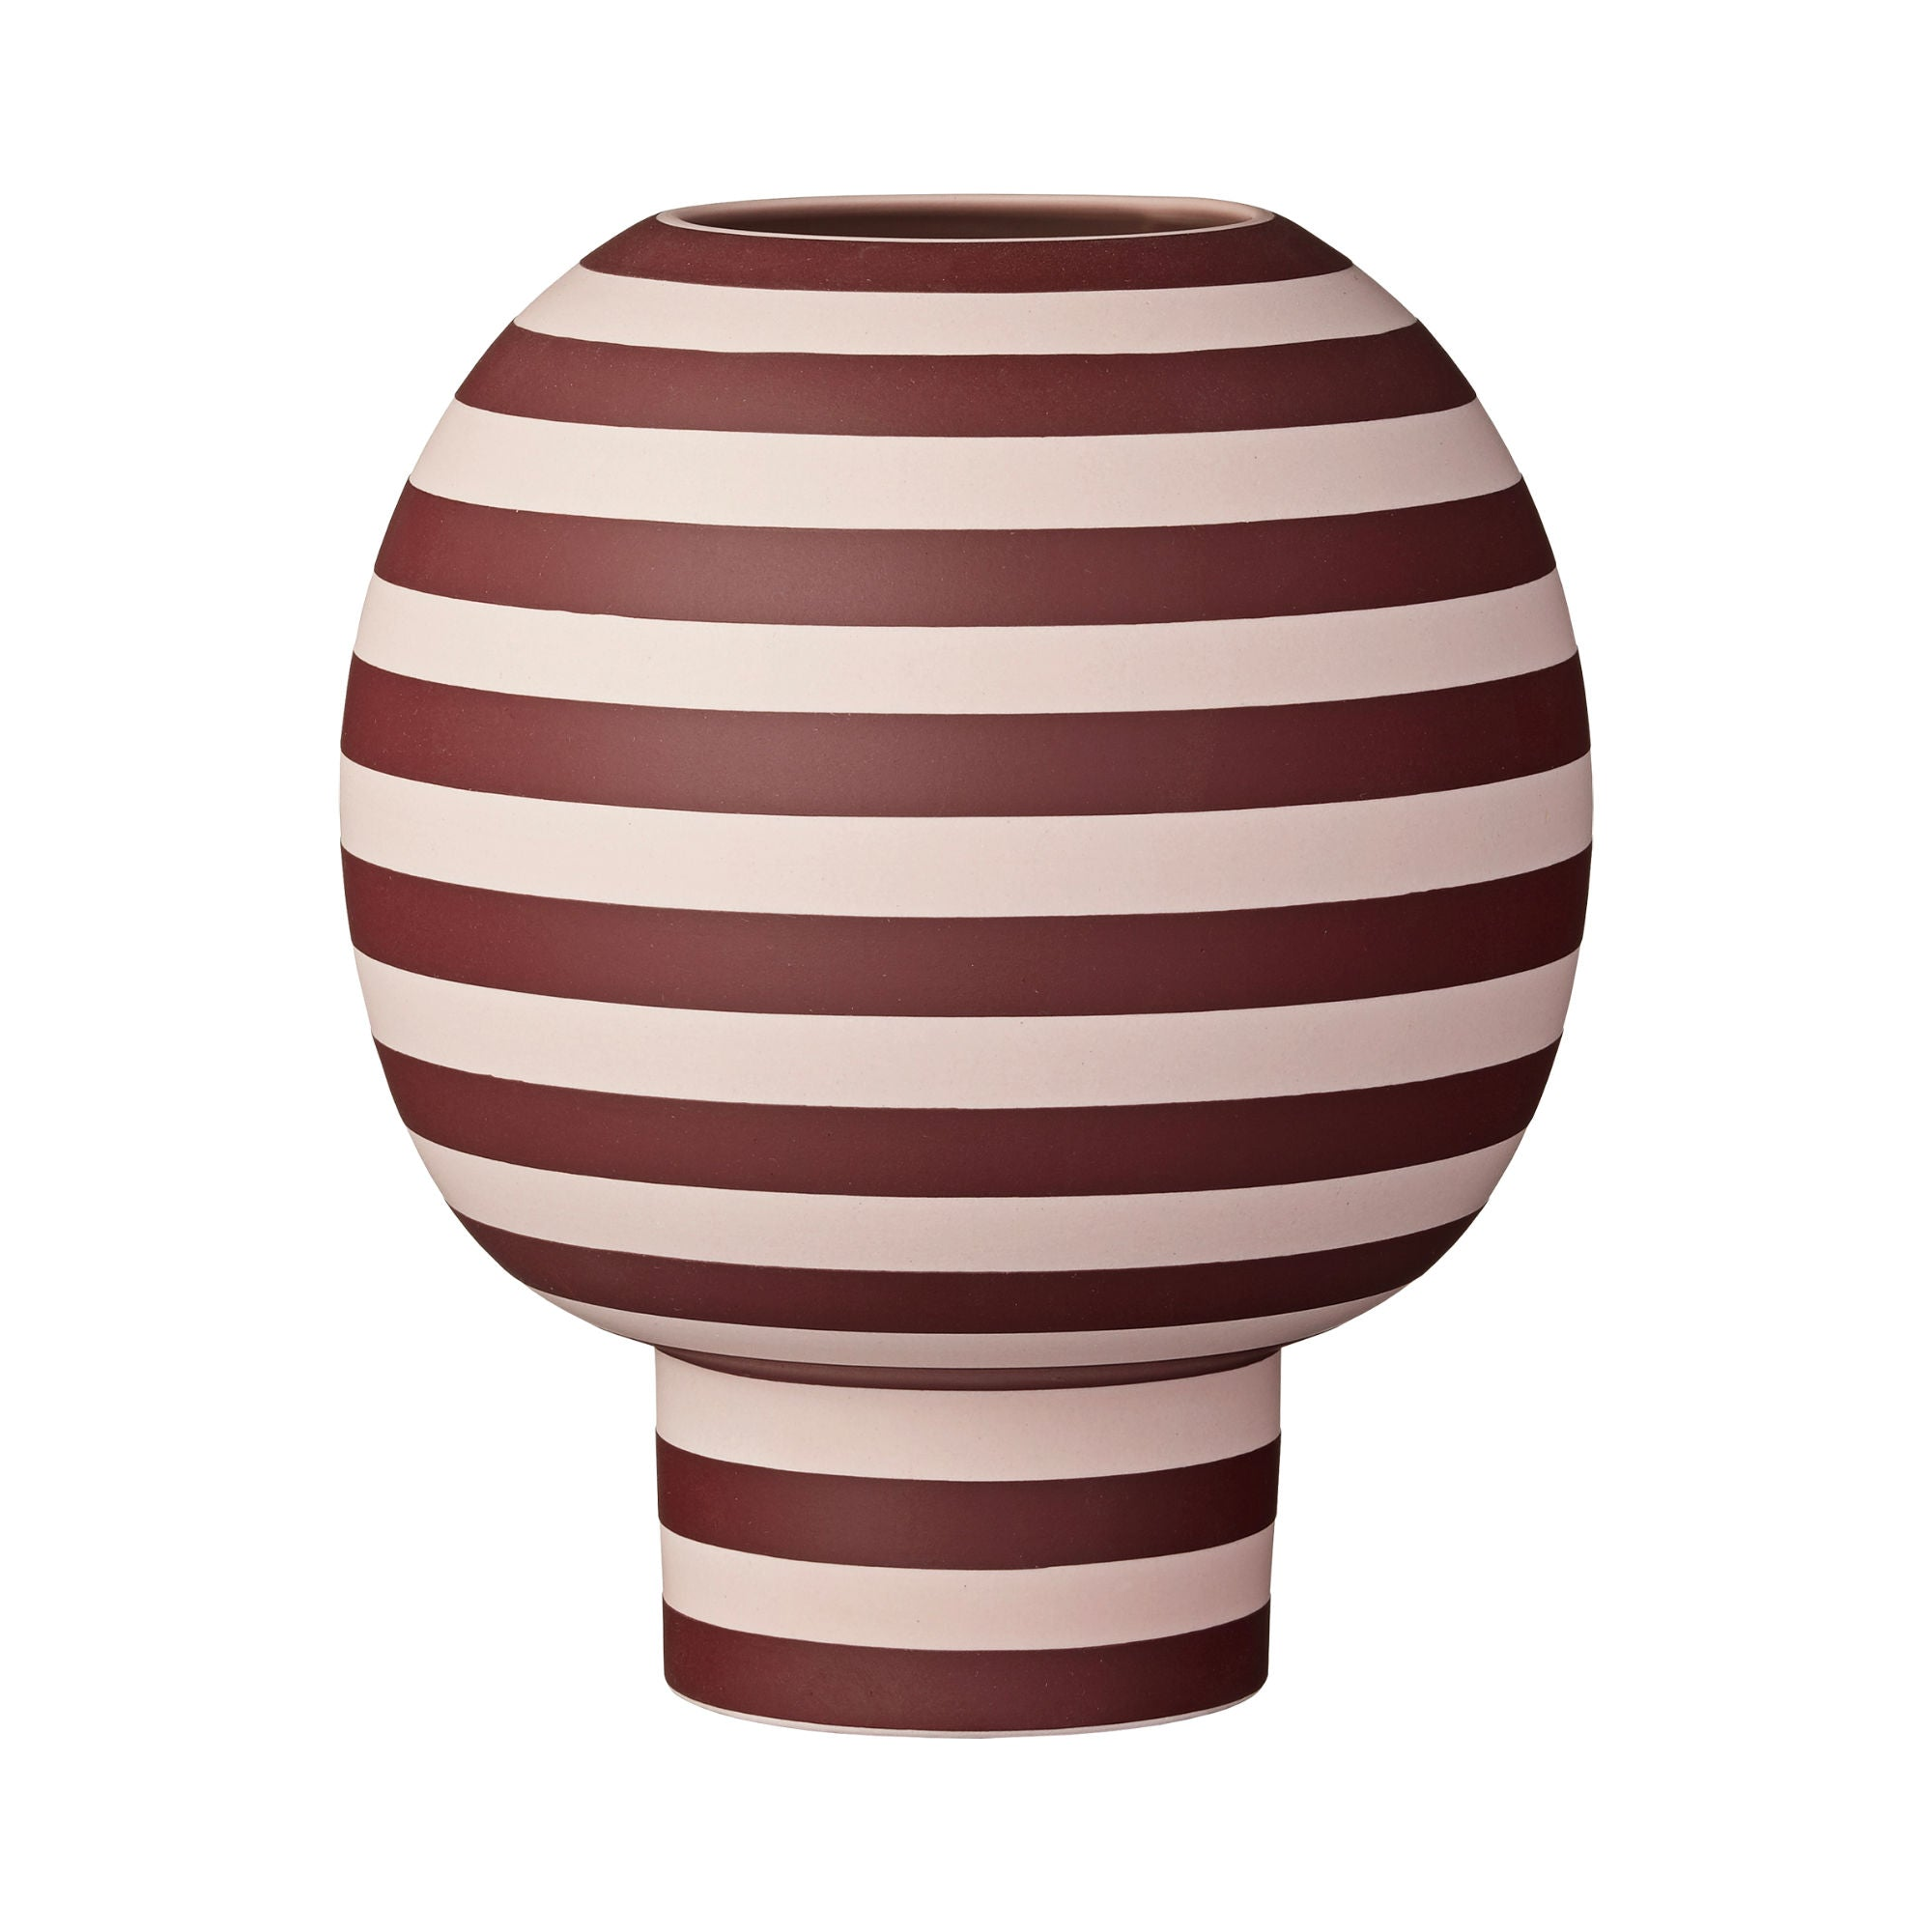 Aytm Varia Sculptural Vase , Rose-Bordeaux